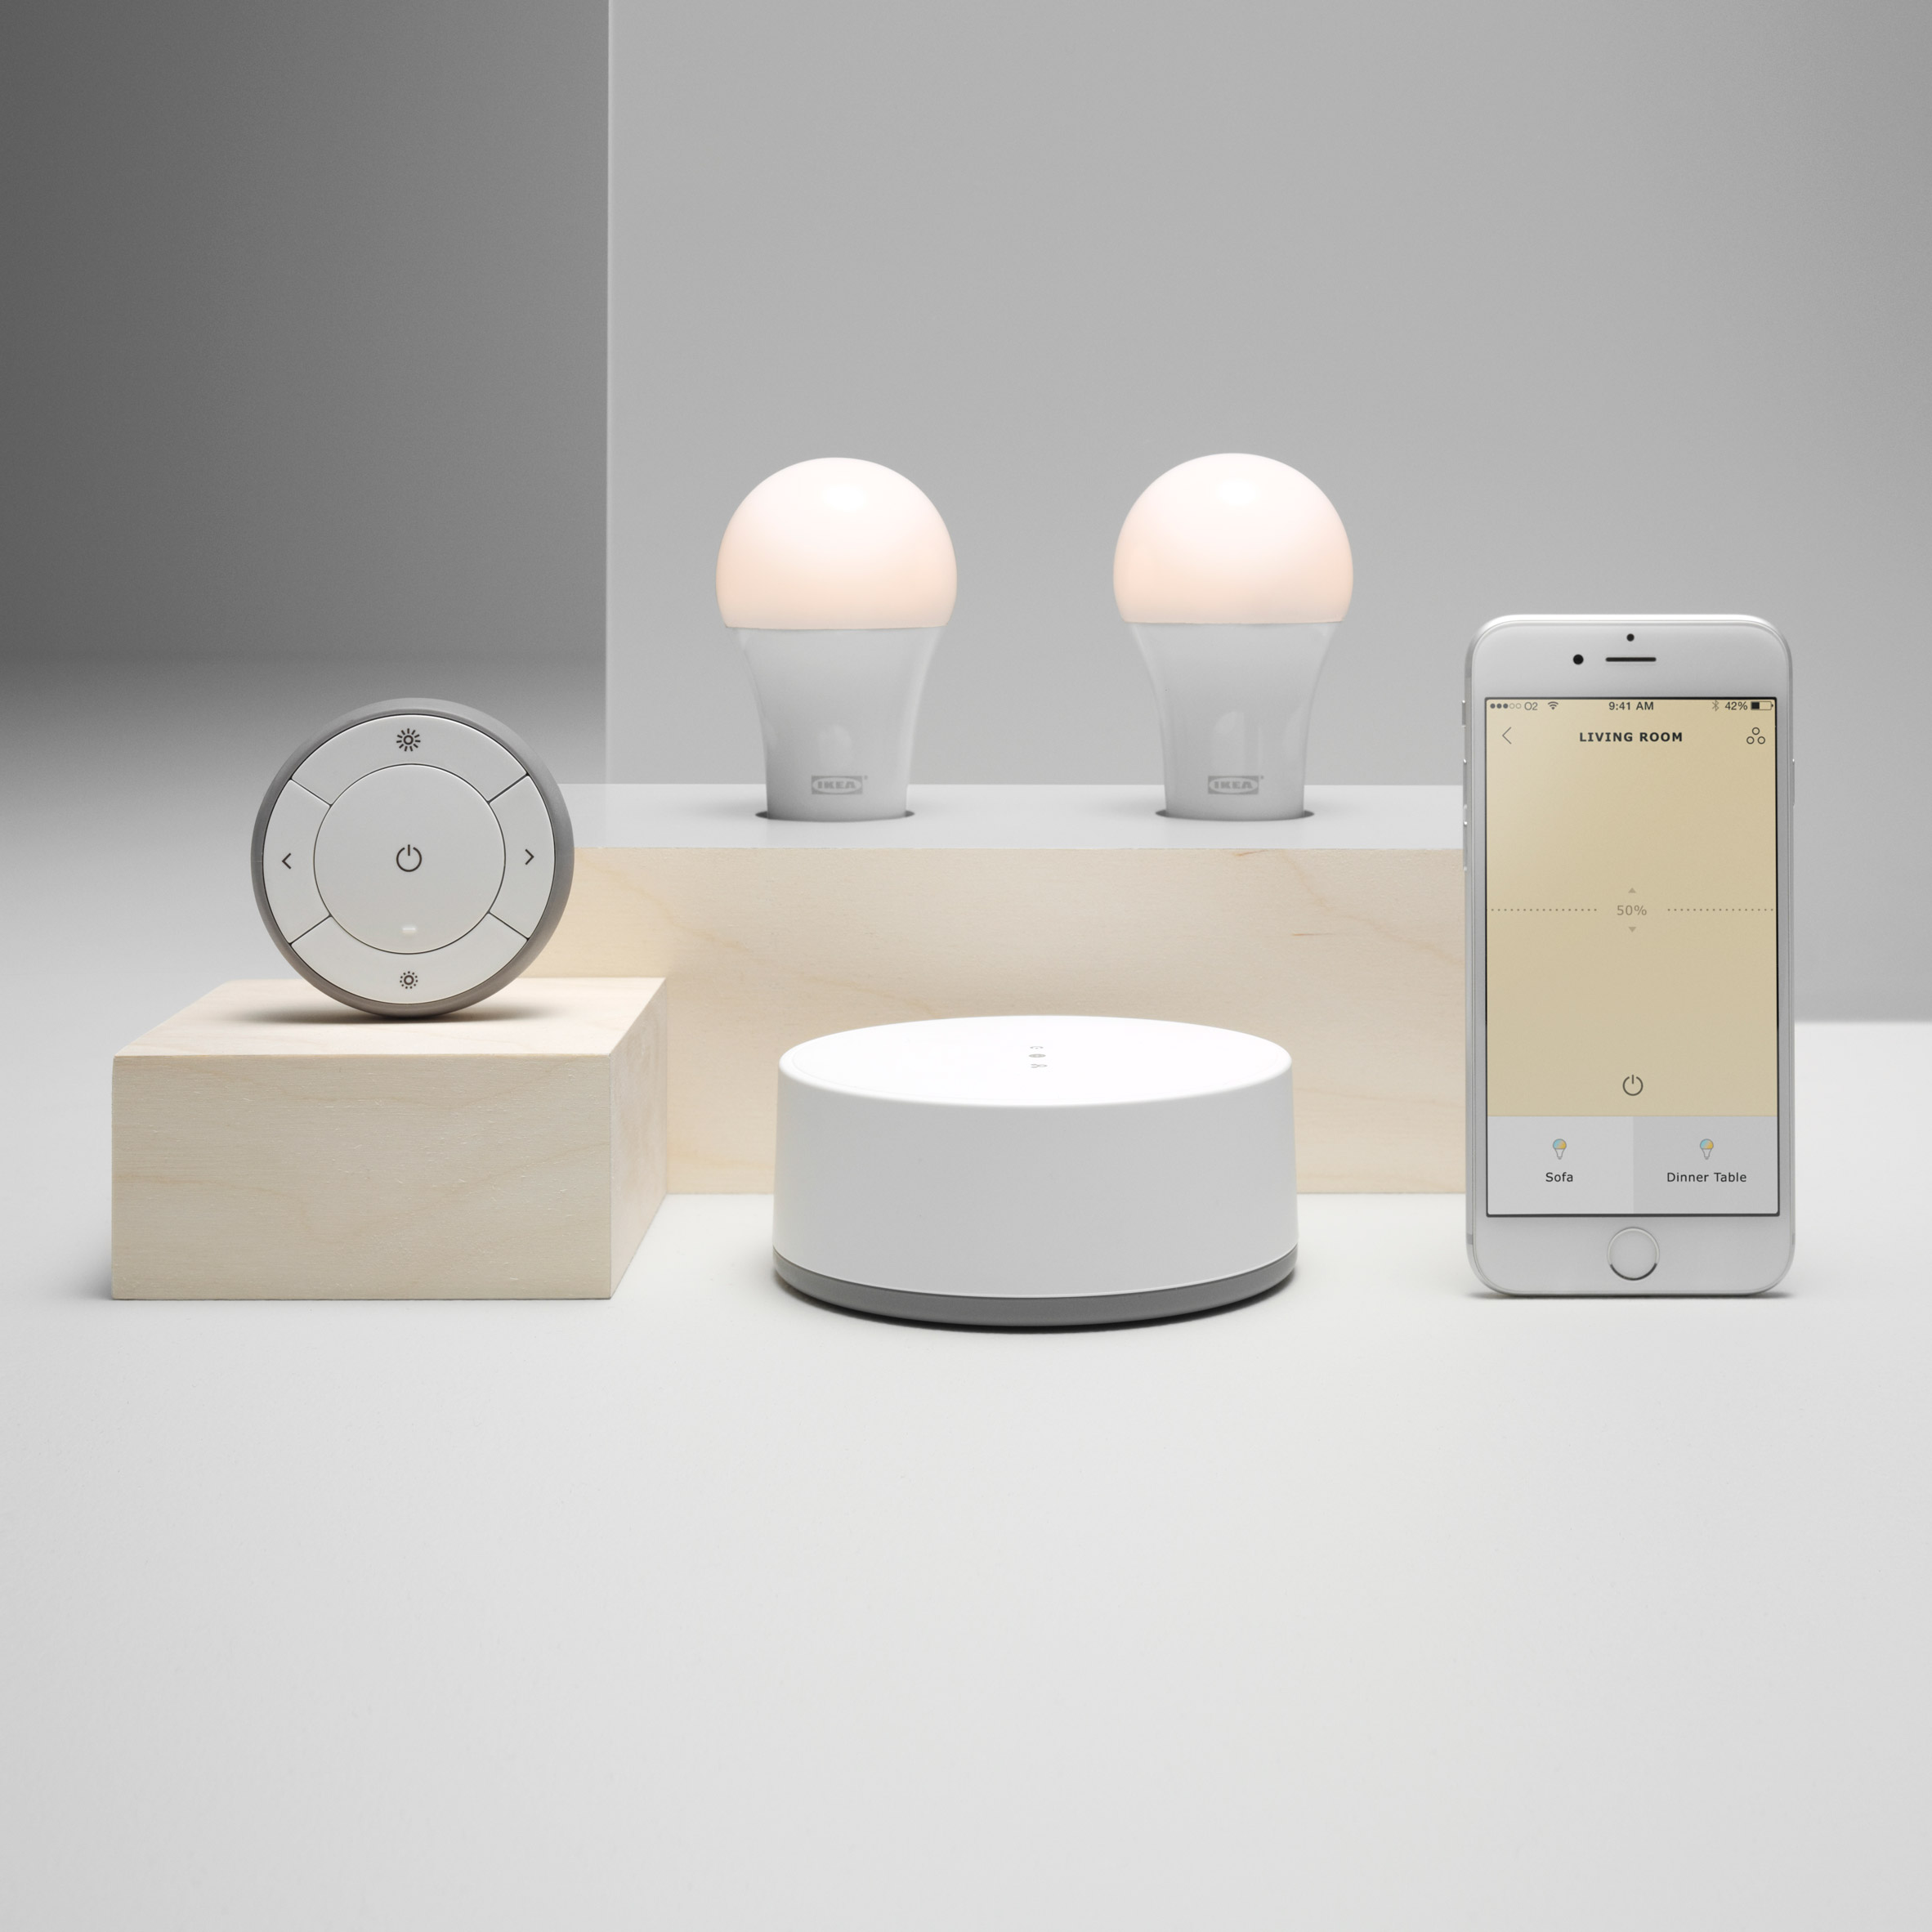 ikea-smart-lights-design-lighting-lamps_dezeen_2364_col_6